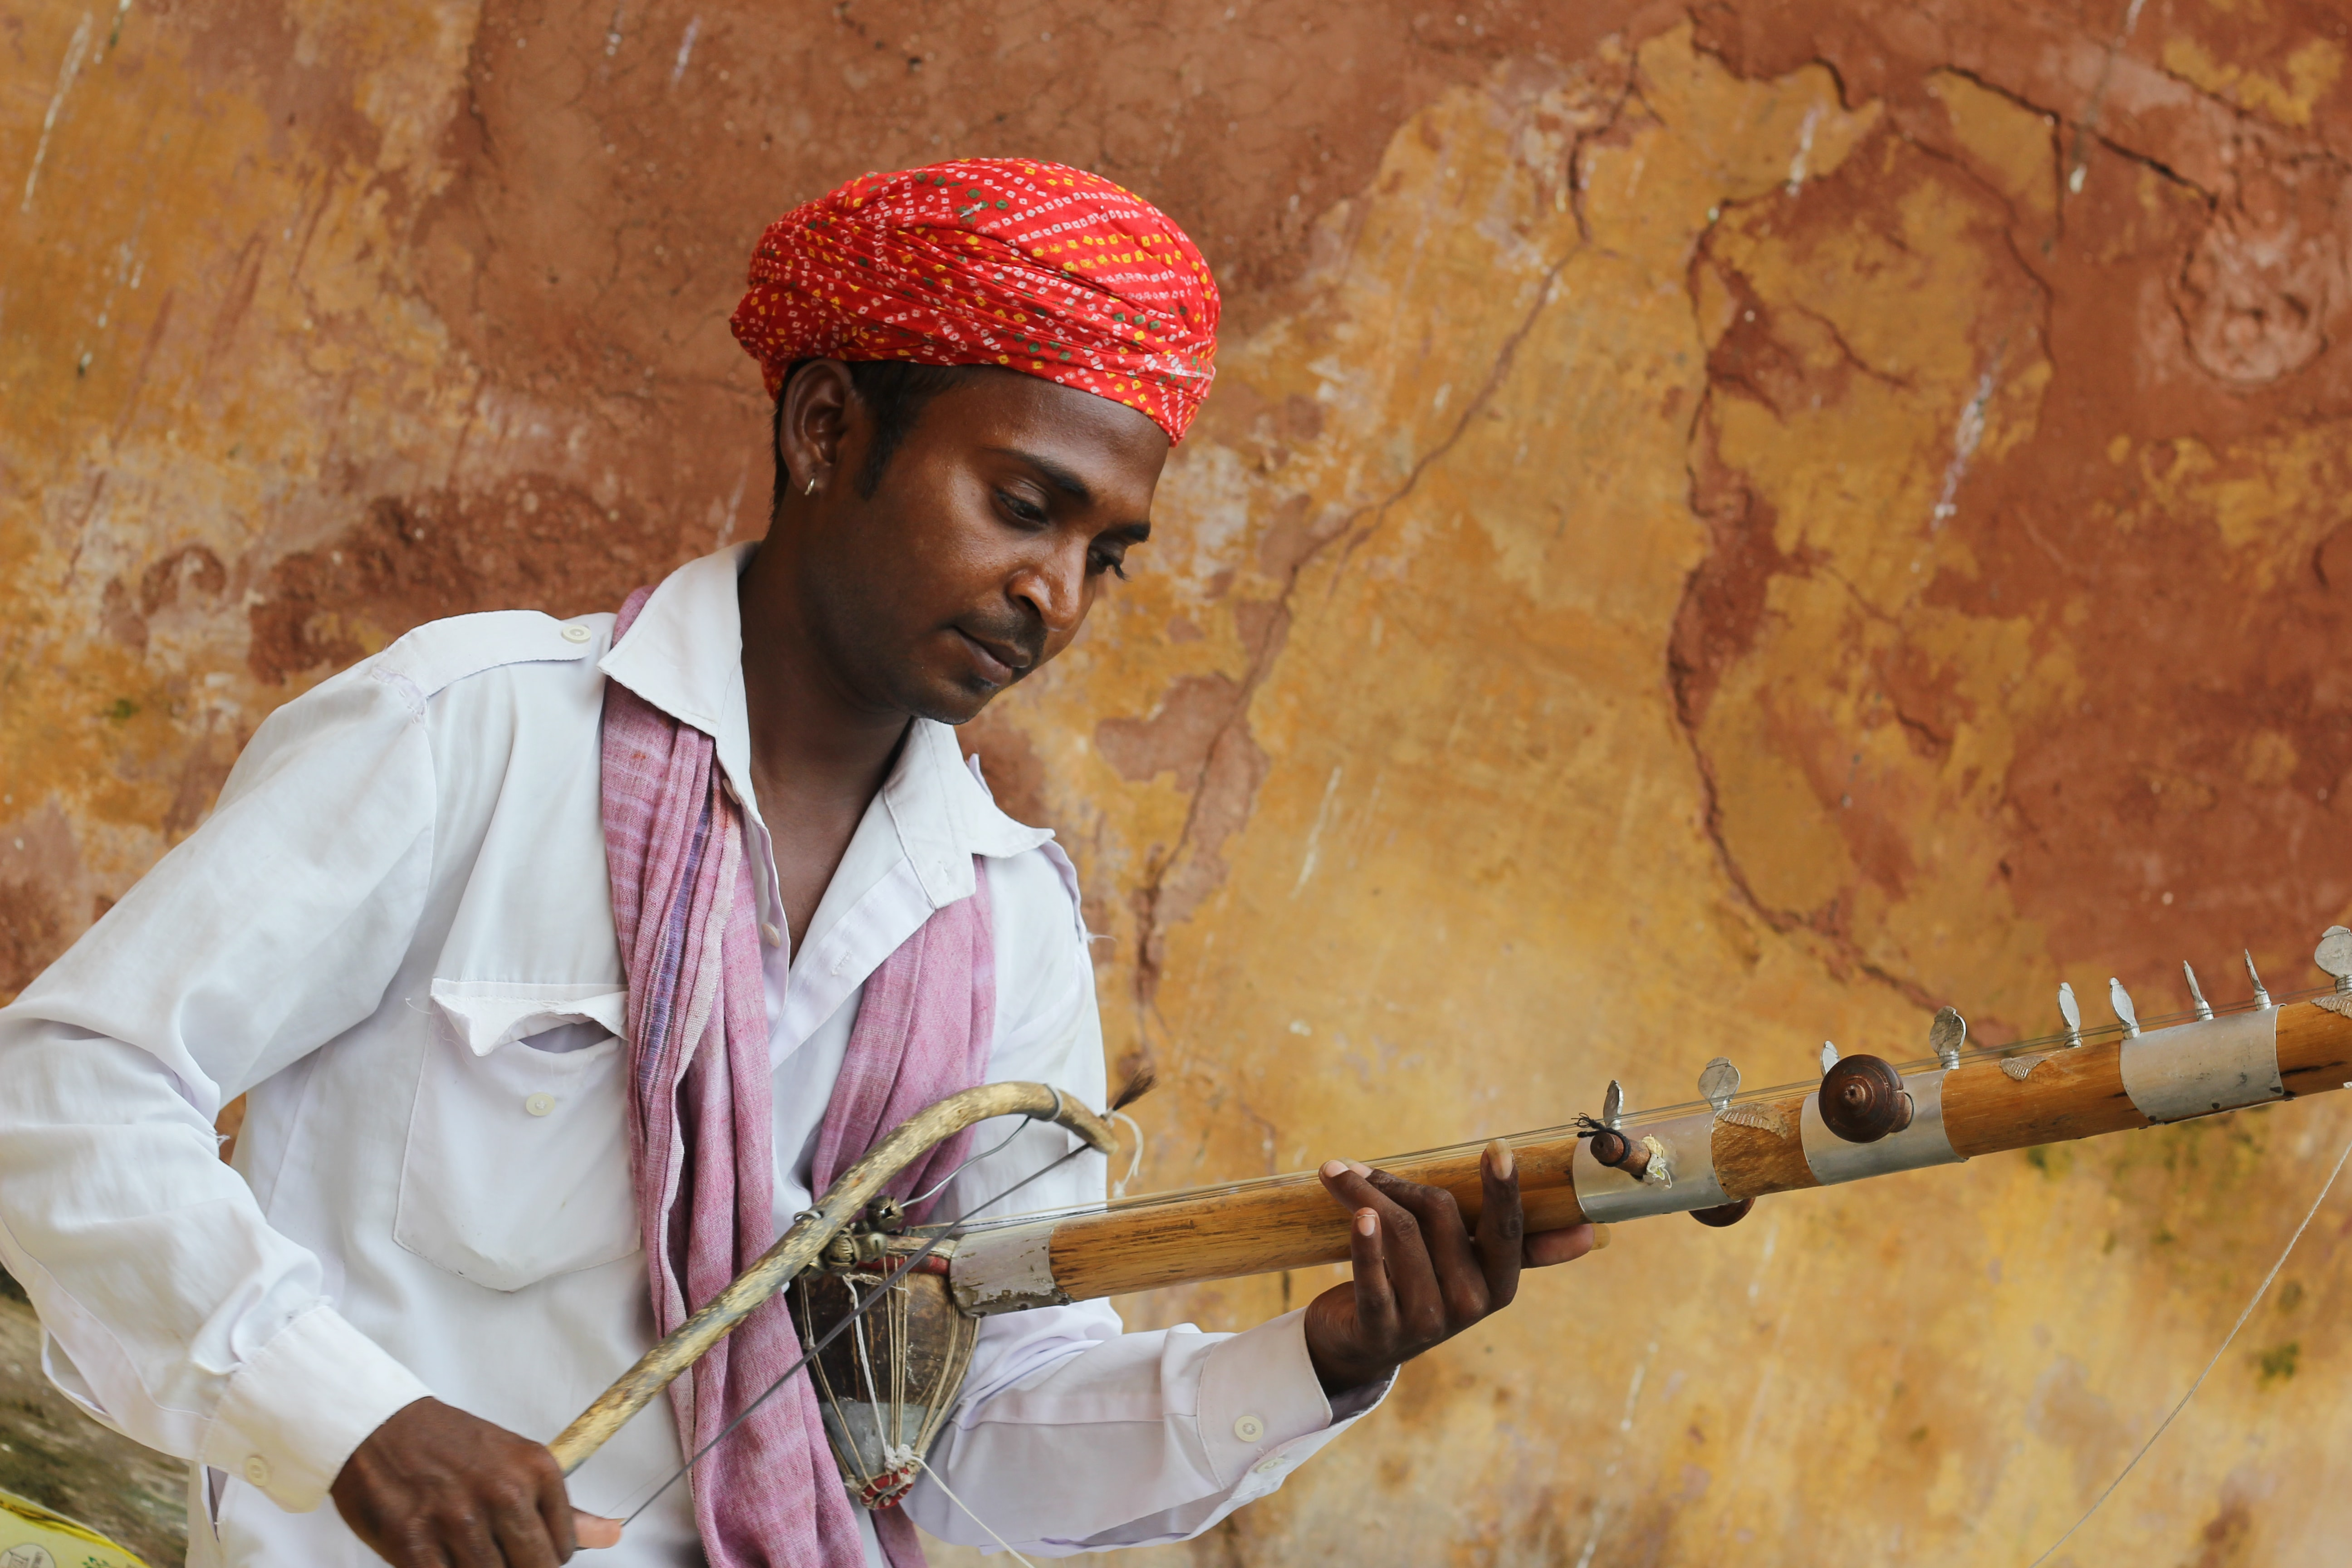 man in red turban playing musical instrument